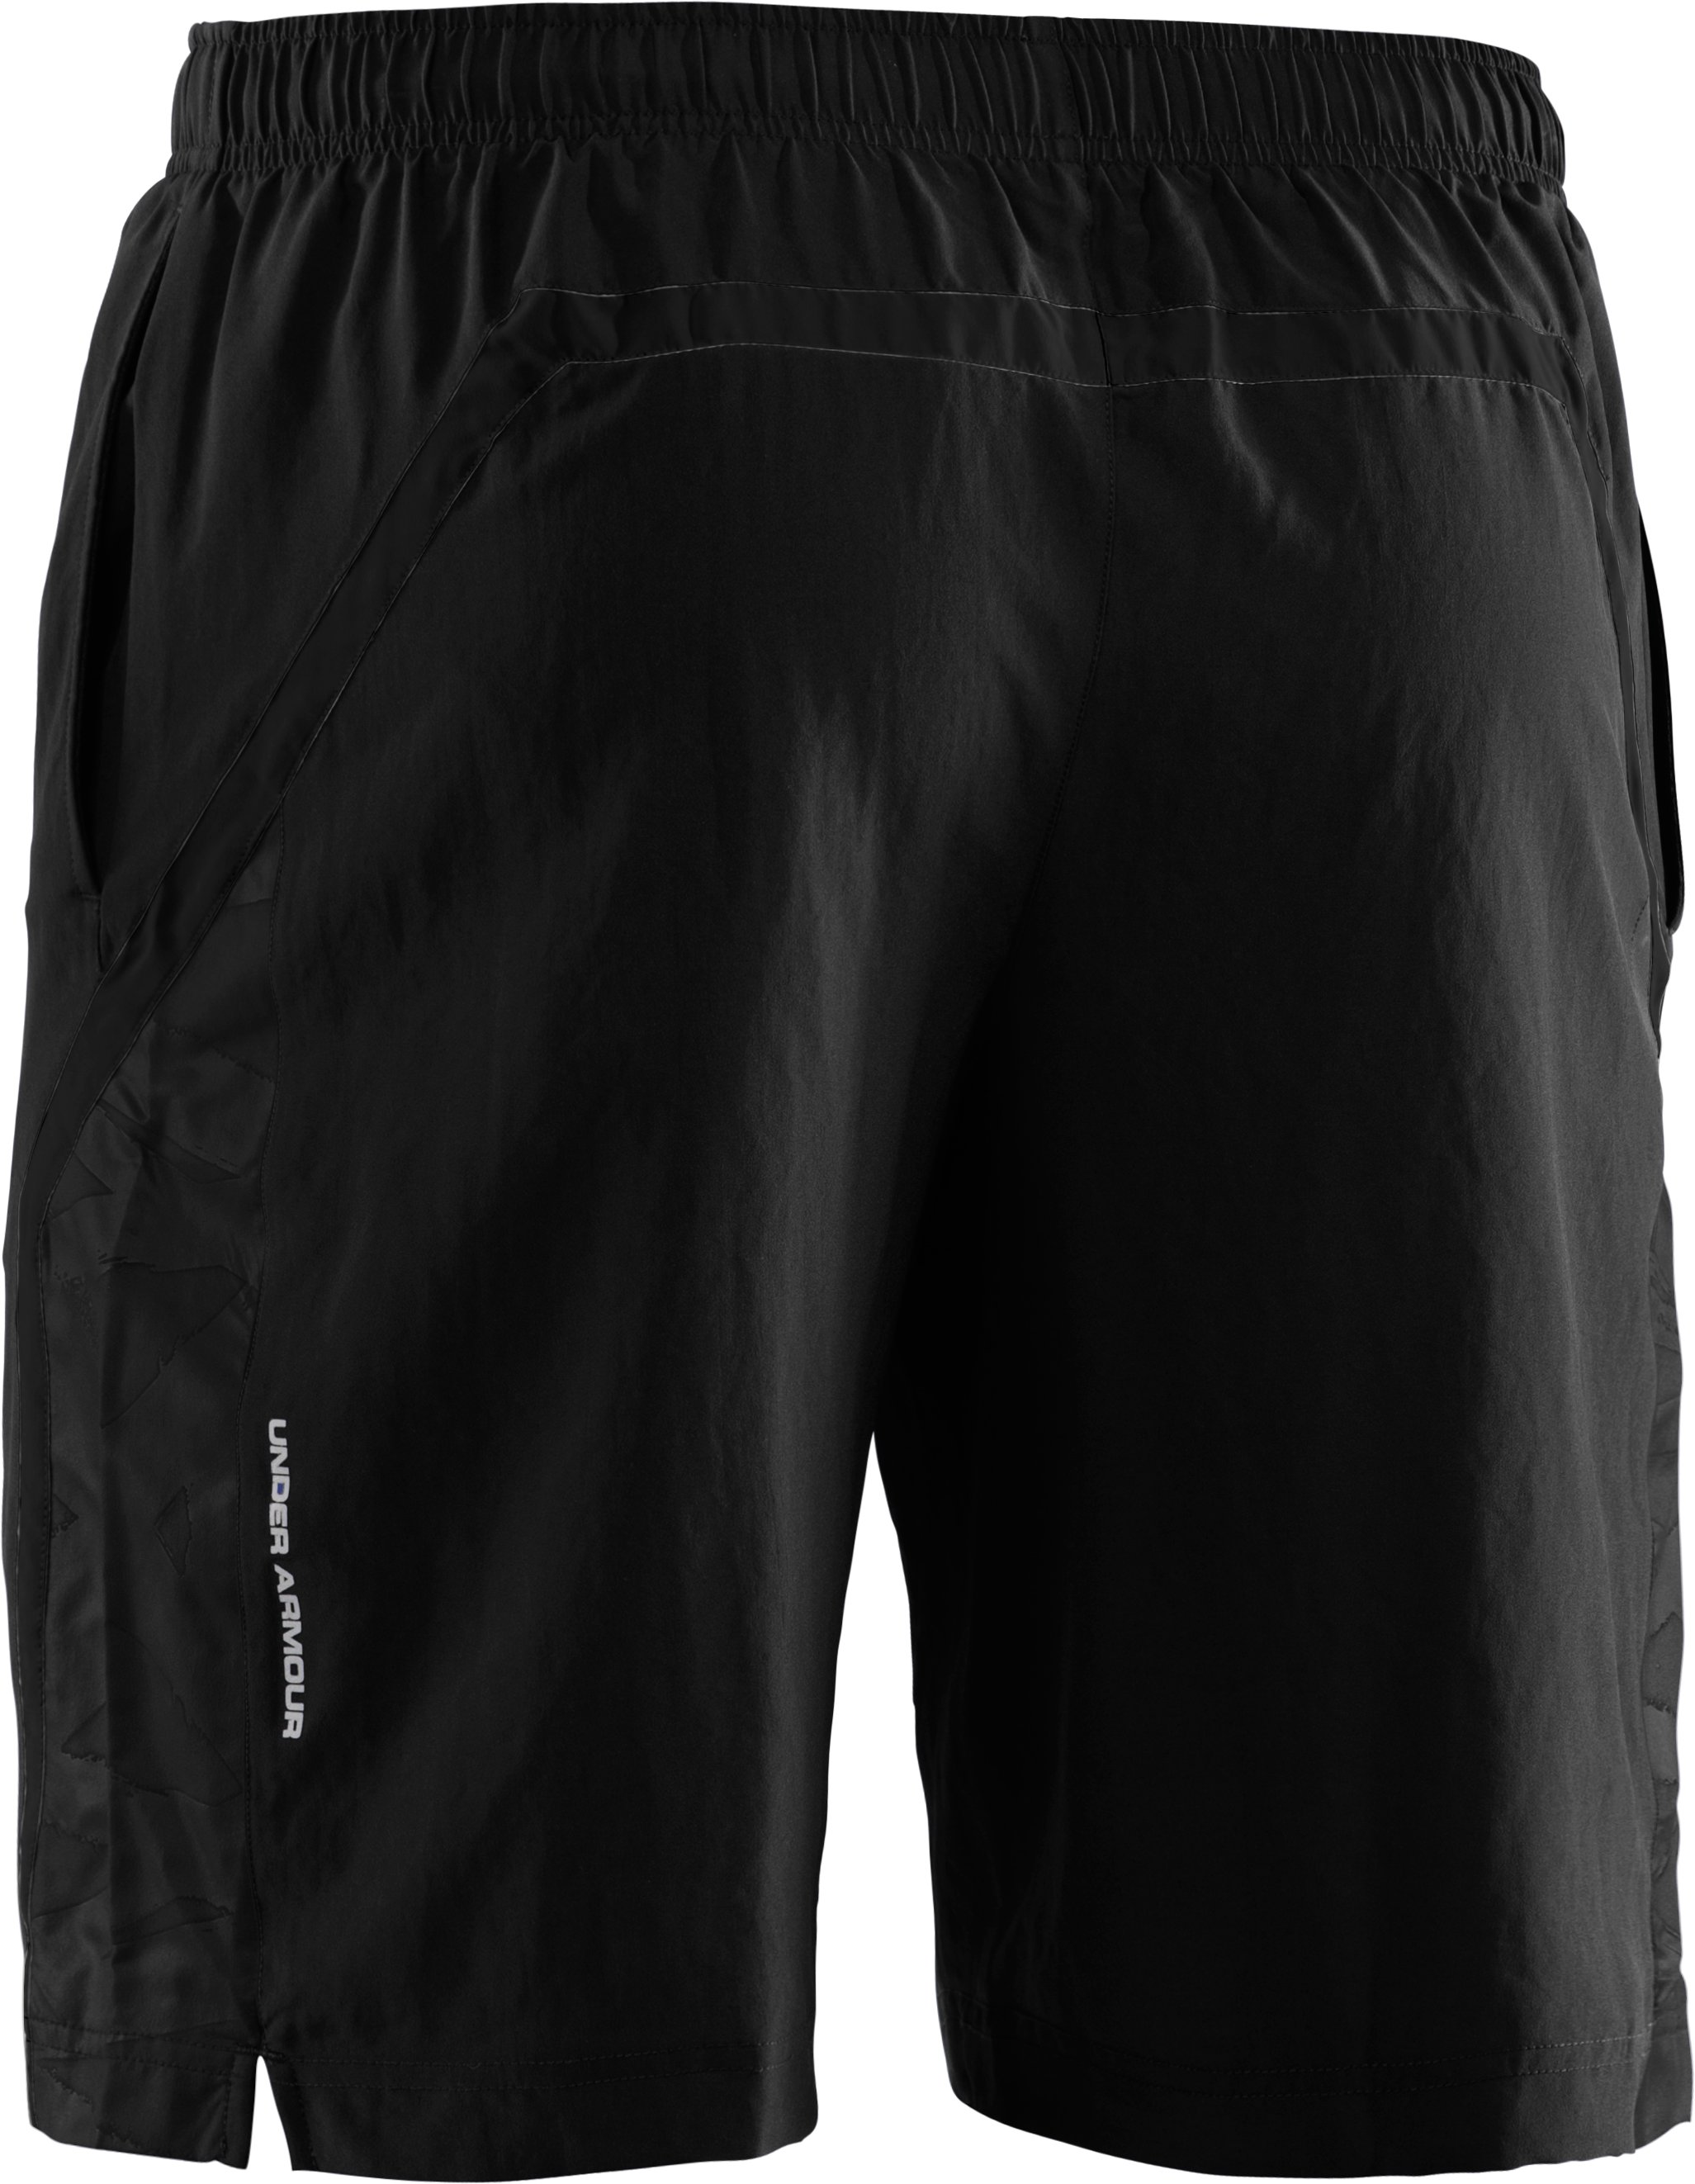 "Men's UA Escape 9"" Woven Shorts, Black"